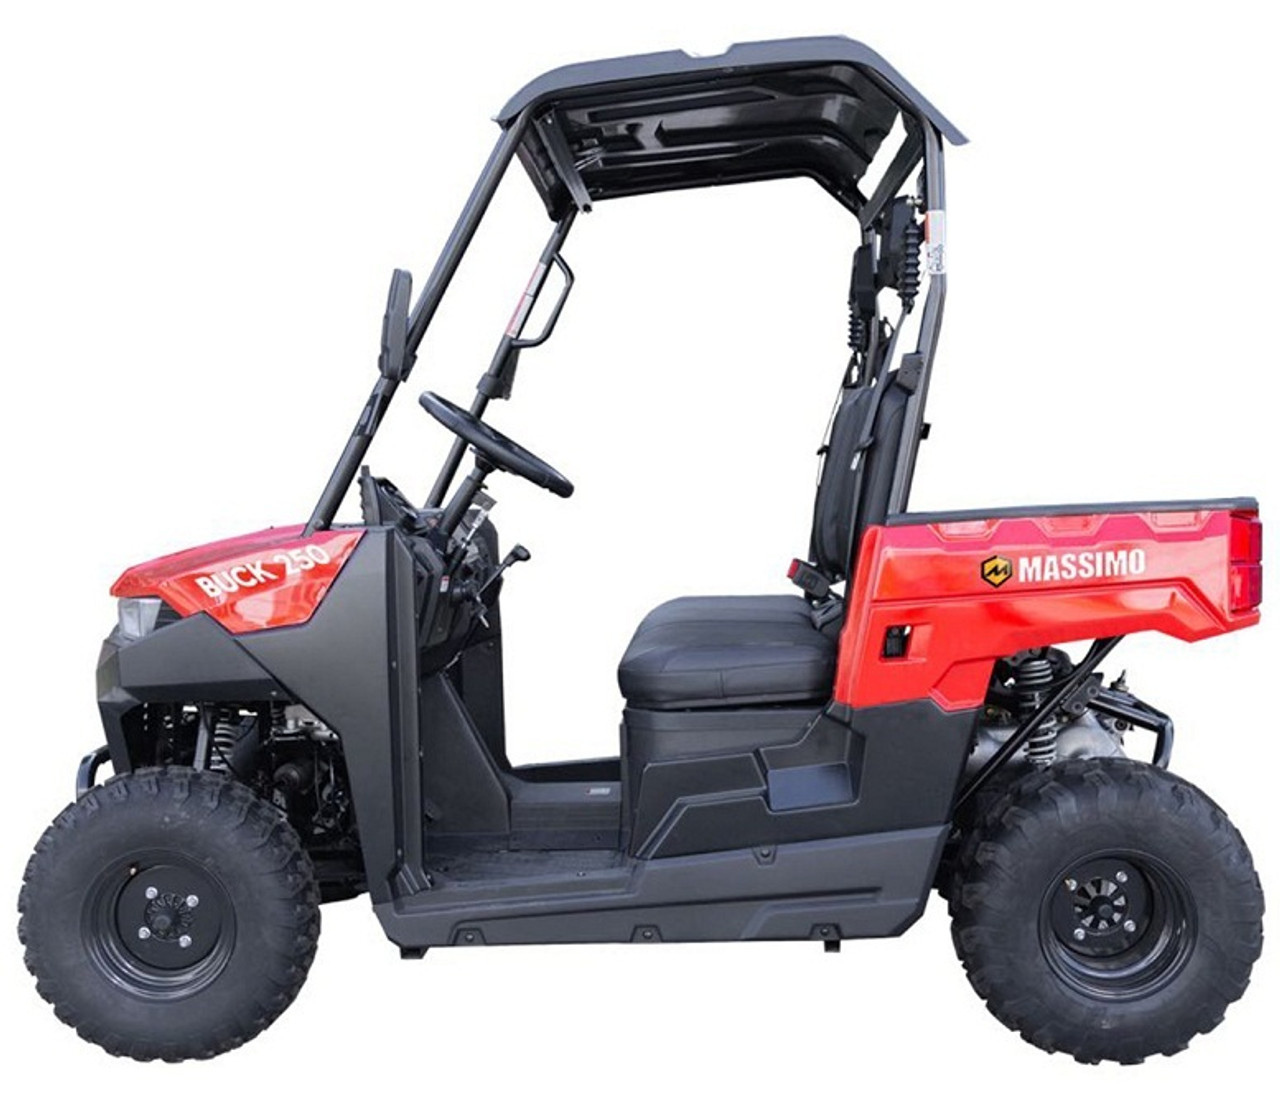 Massimo Buck 250 2021 UTV, 177Cc Efi Air Cooled, 4 - Stroke, Single Cylinder